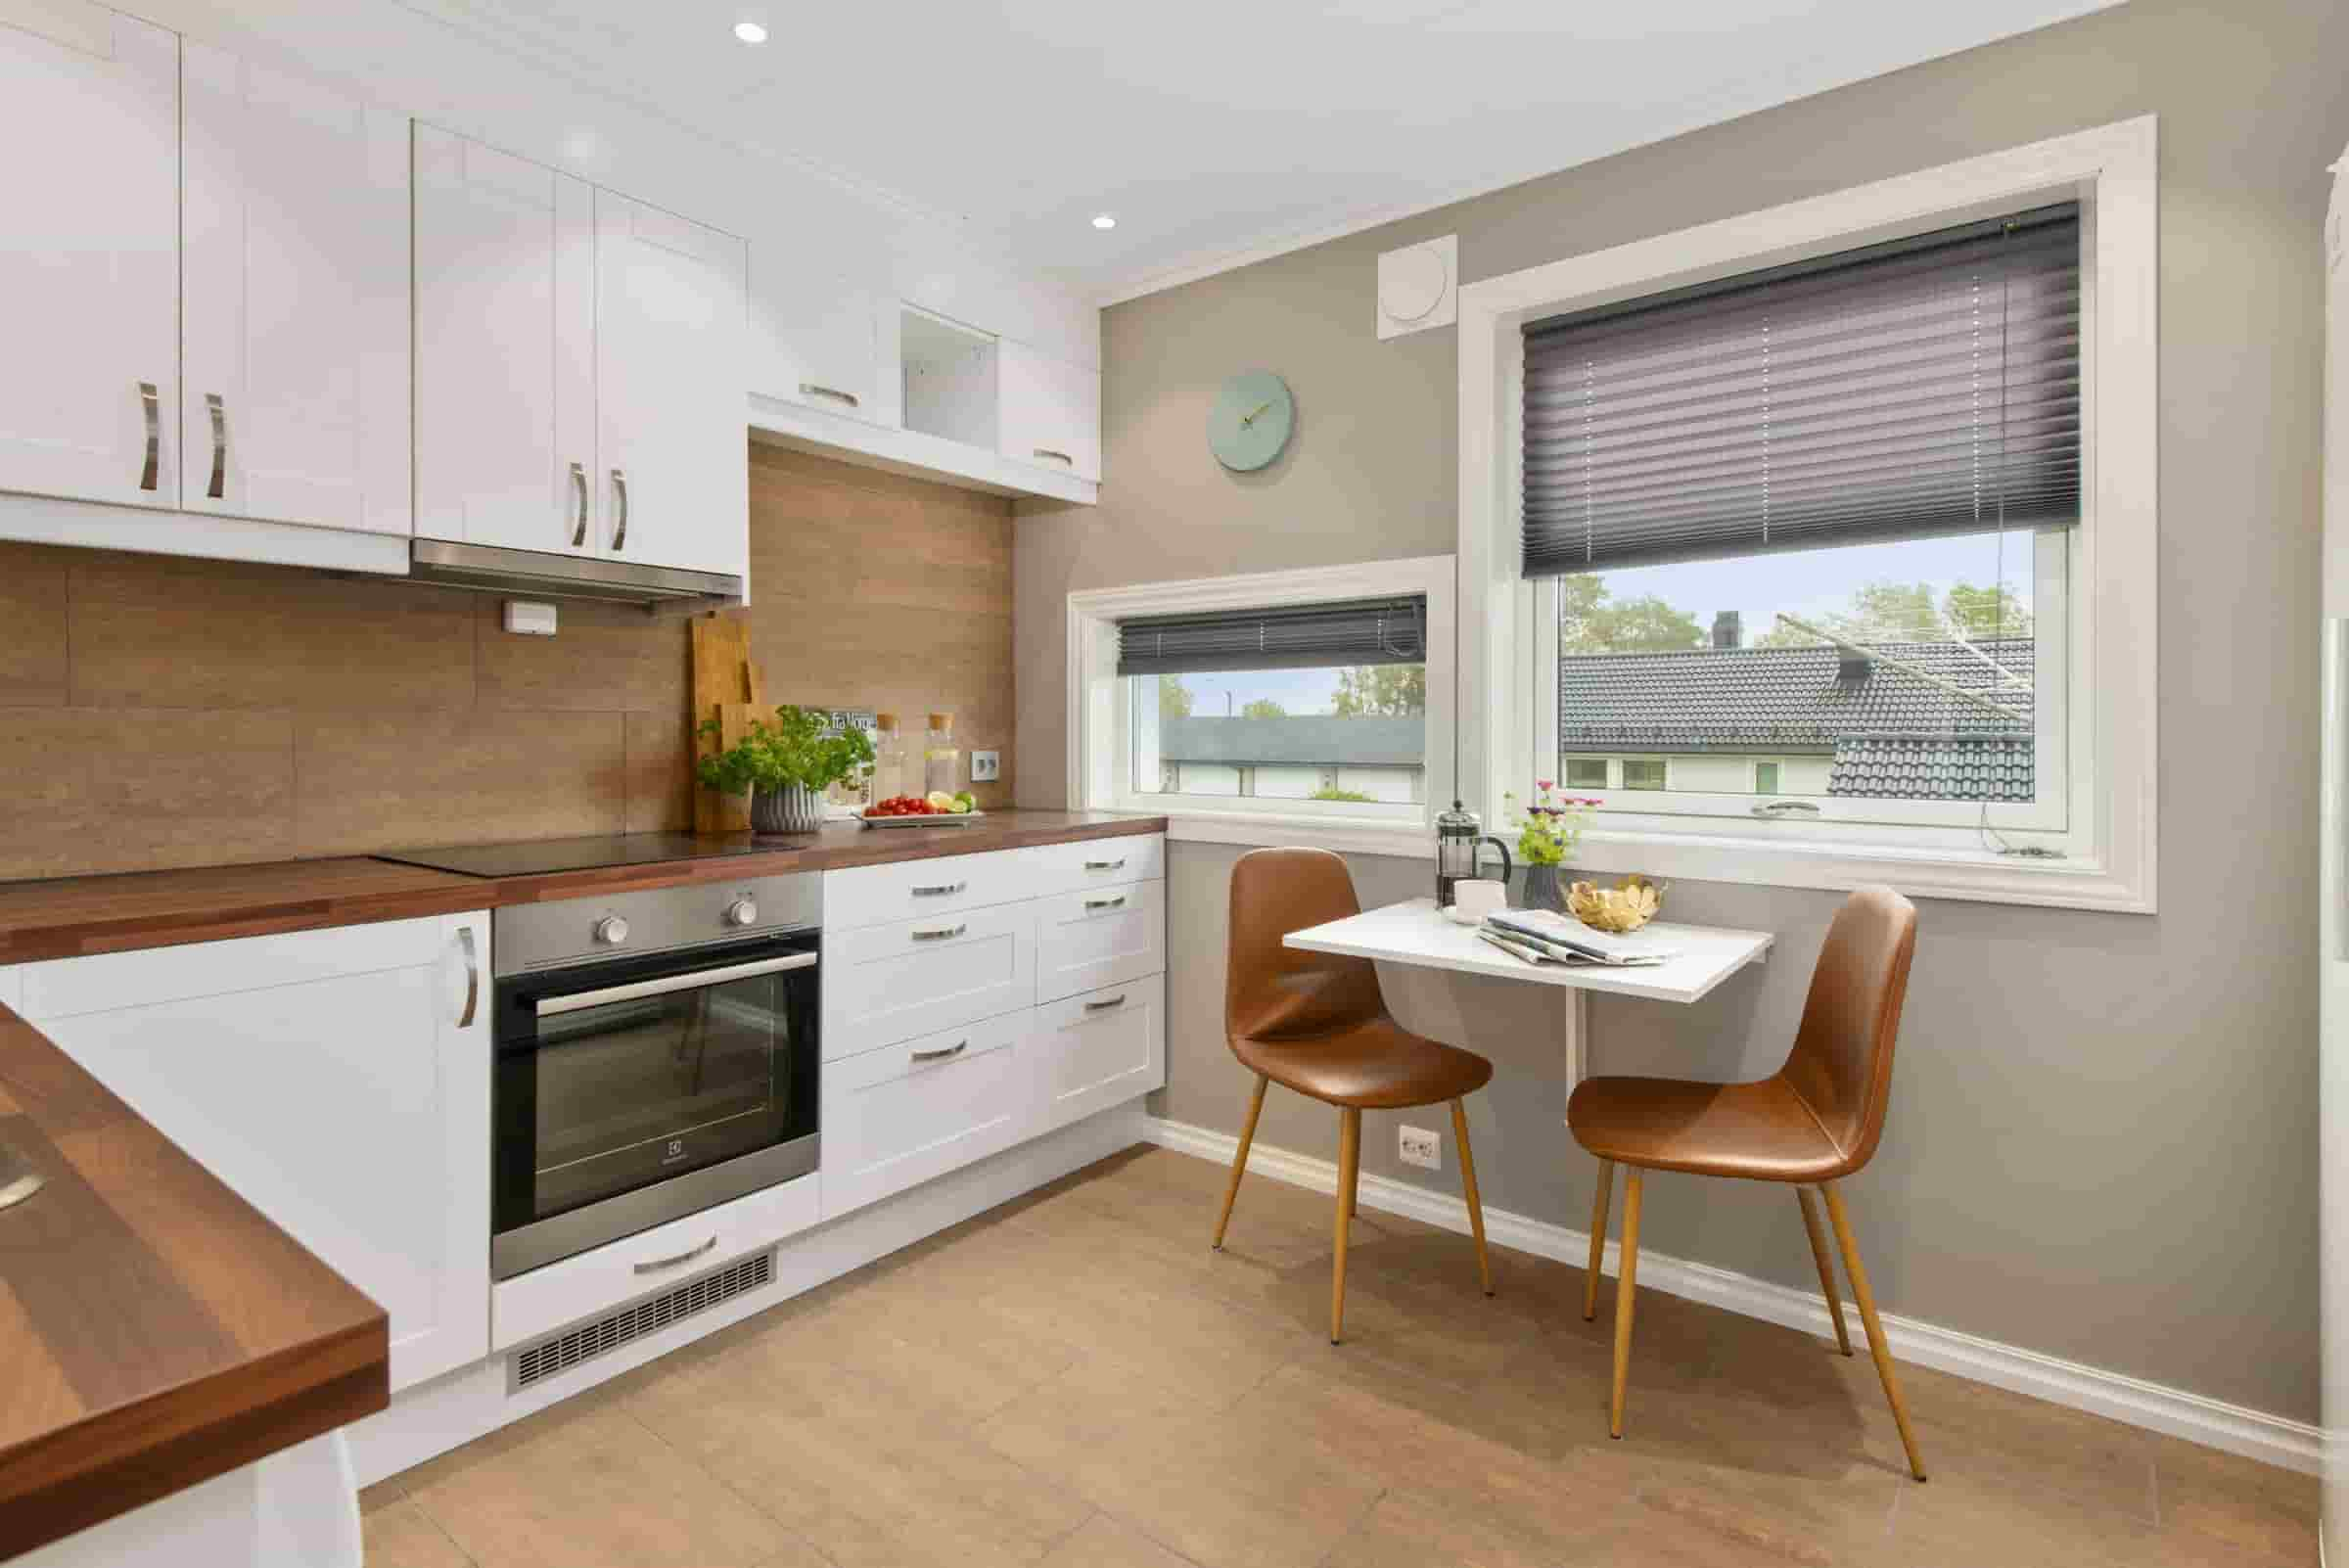 Low Maintenance Kitchen Materials; A Simple But Well-designed Kitchen